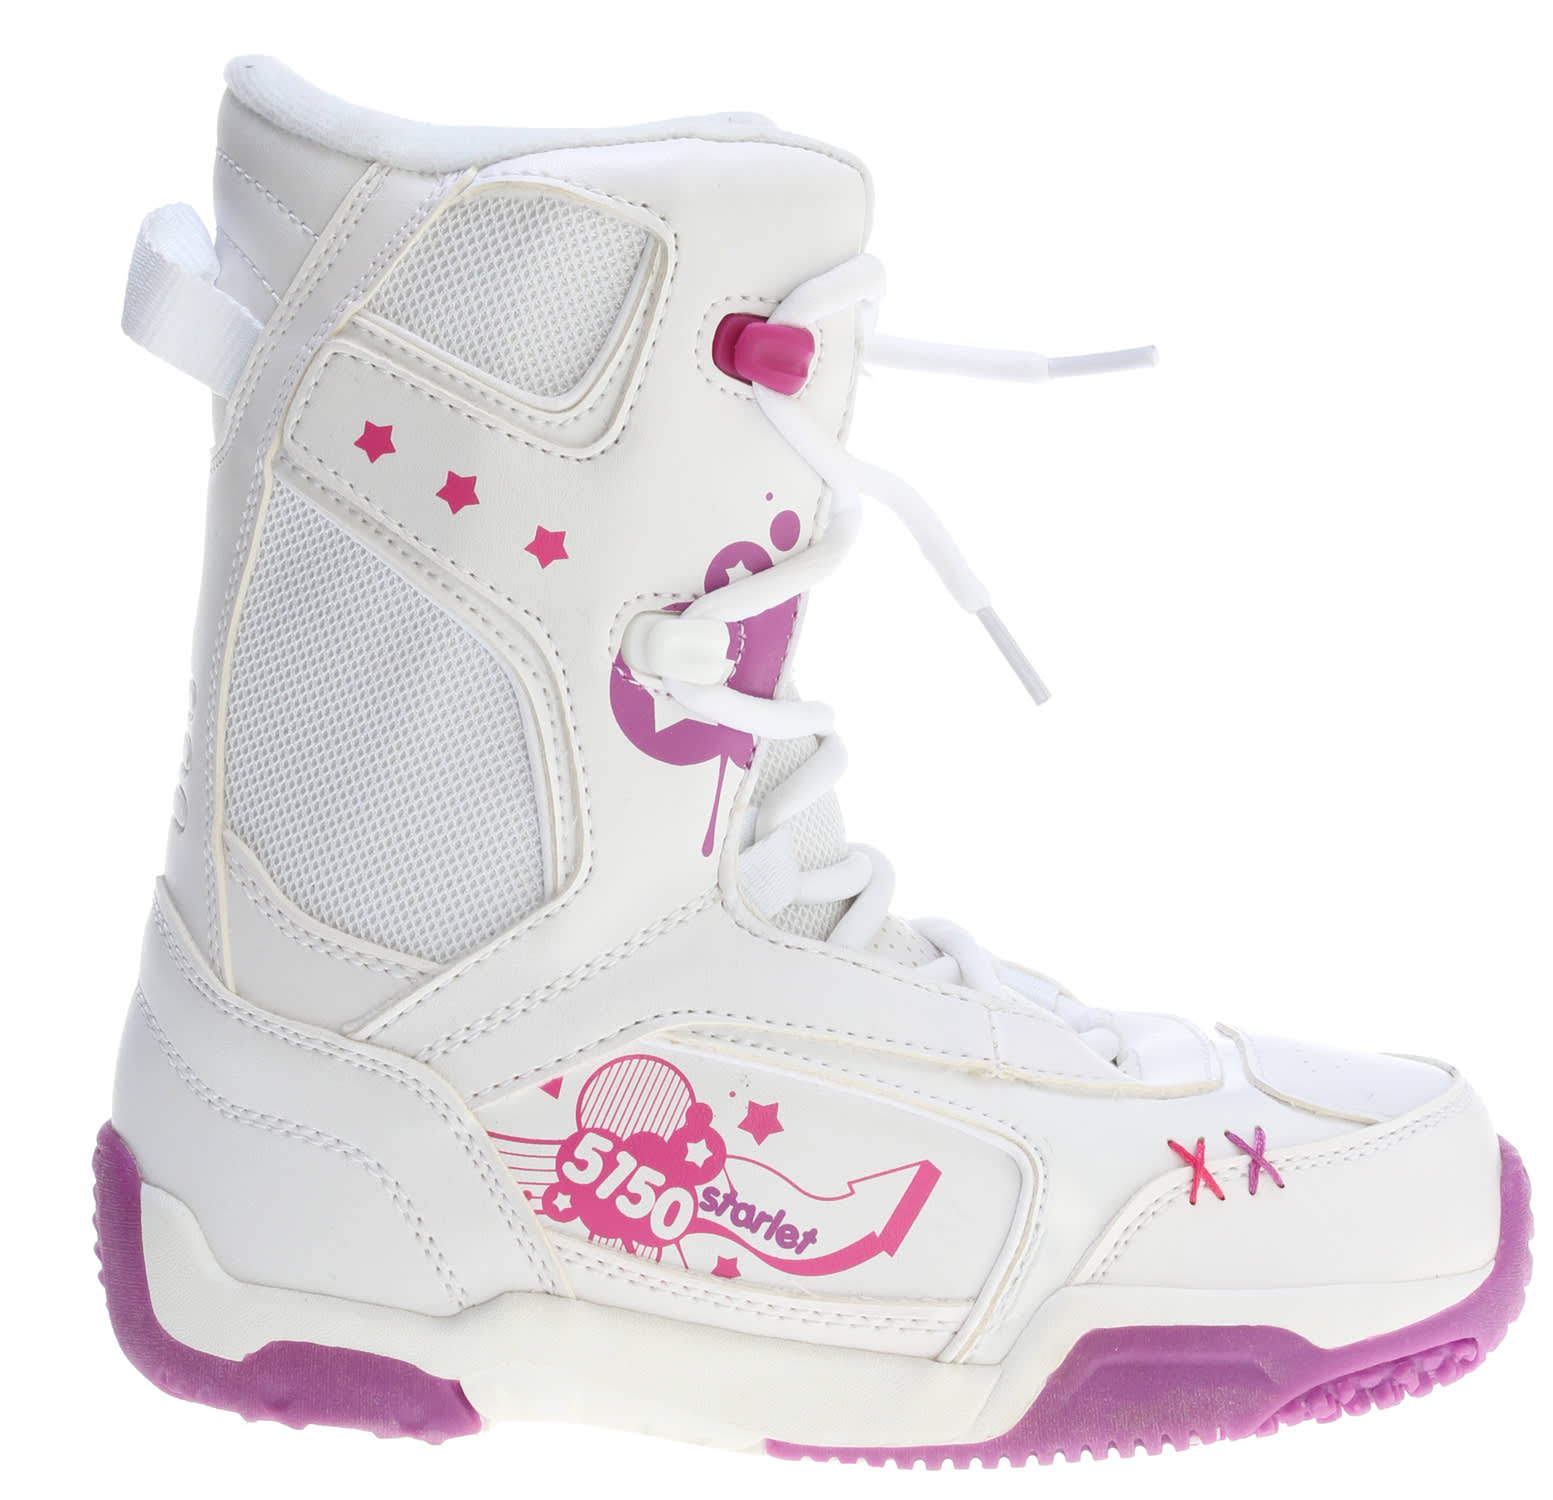 5150 Starlet Snowboard Boots White - Girl's